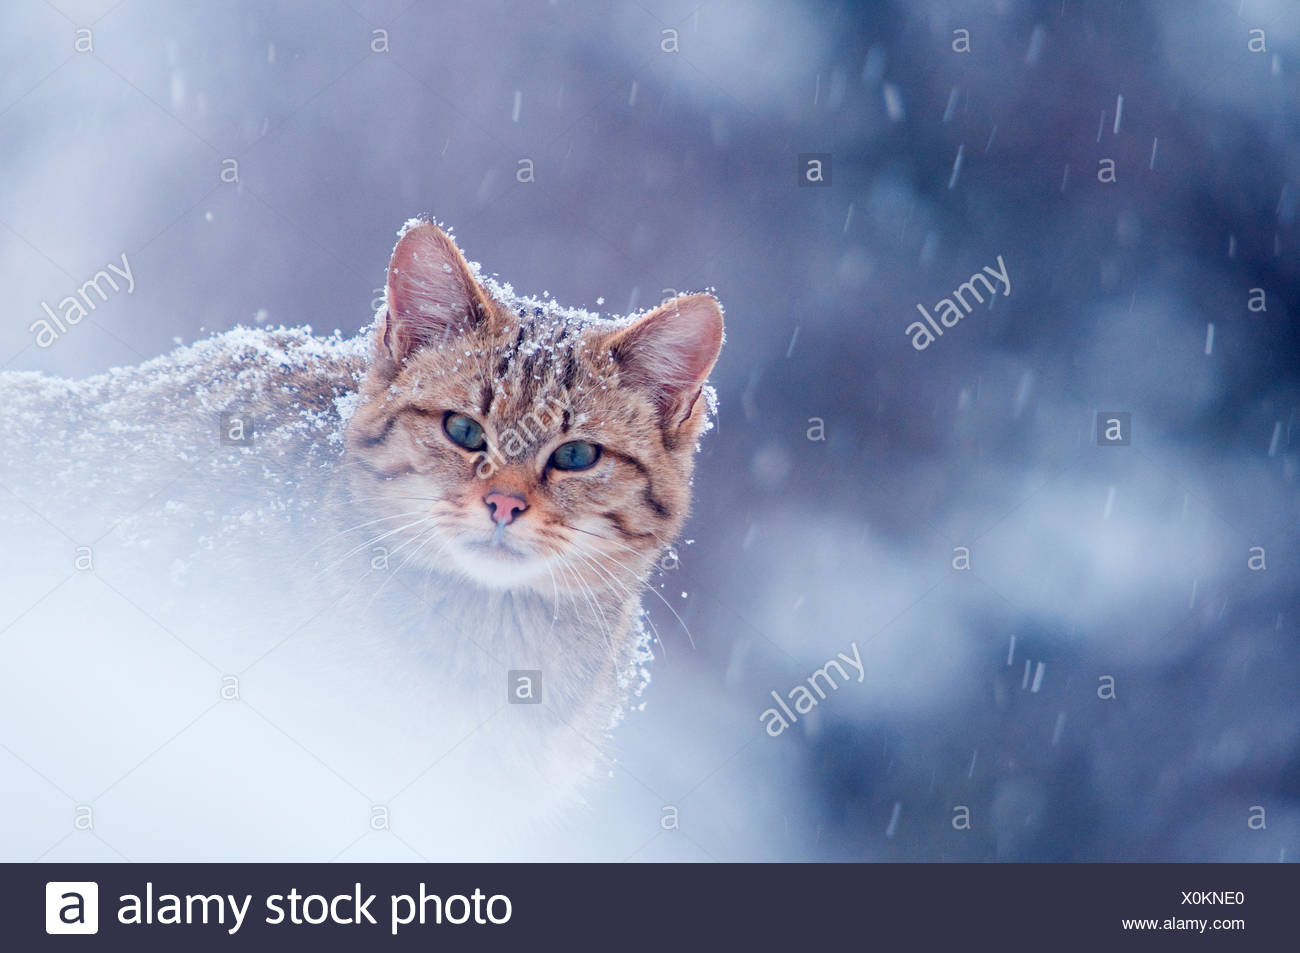 Wild cat (Felis silvestris) in snowstorm captive, Germany - Stock Image